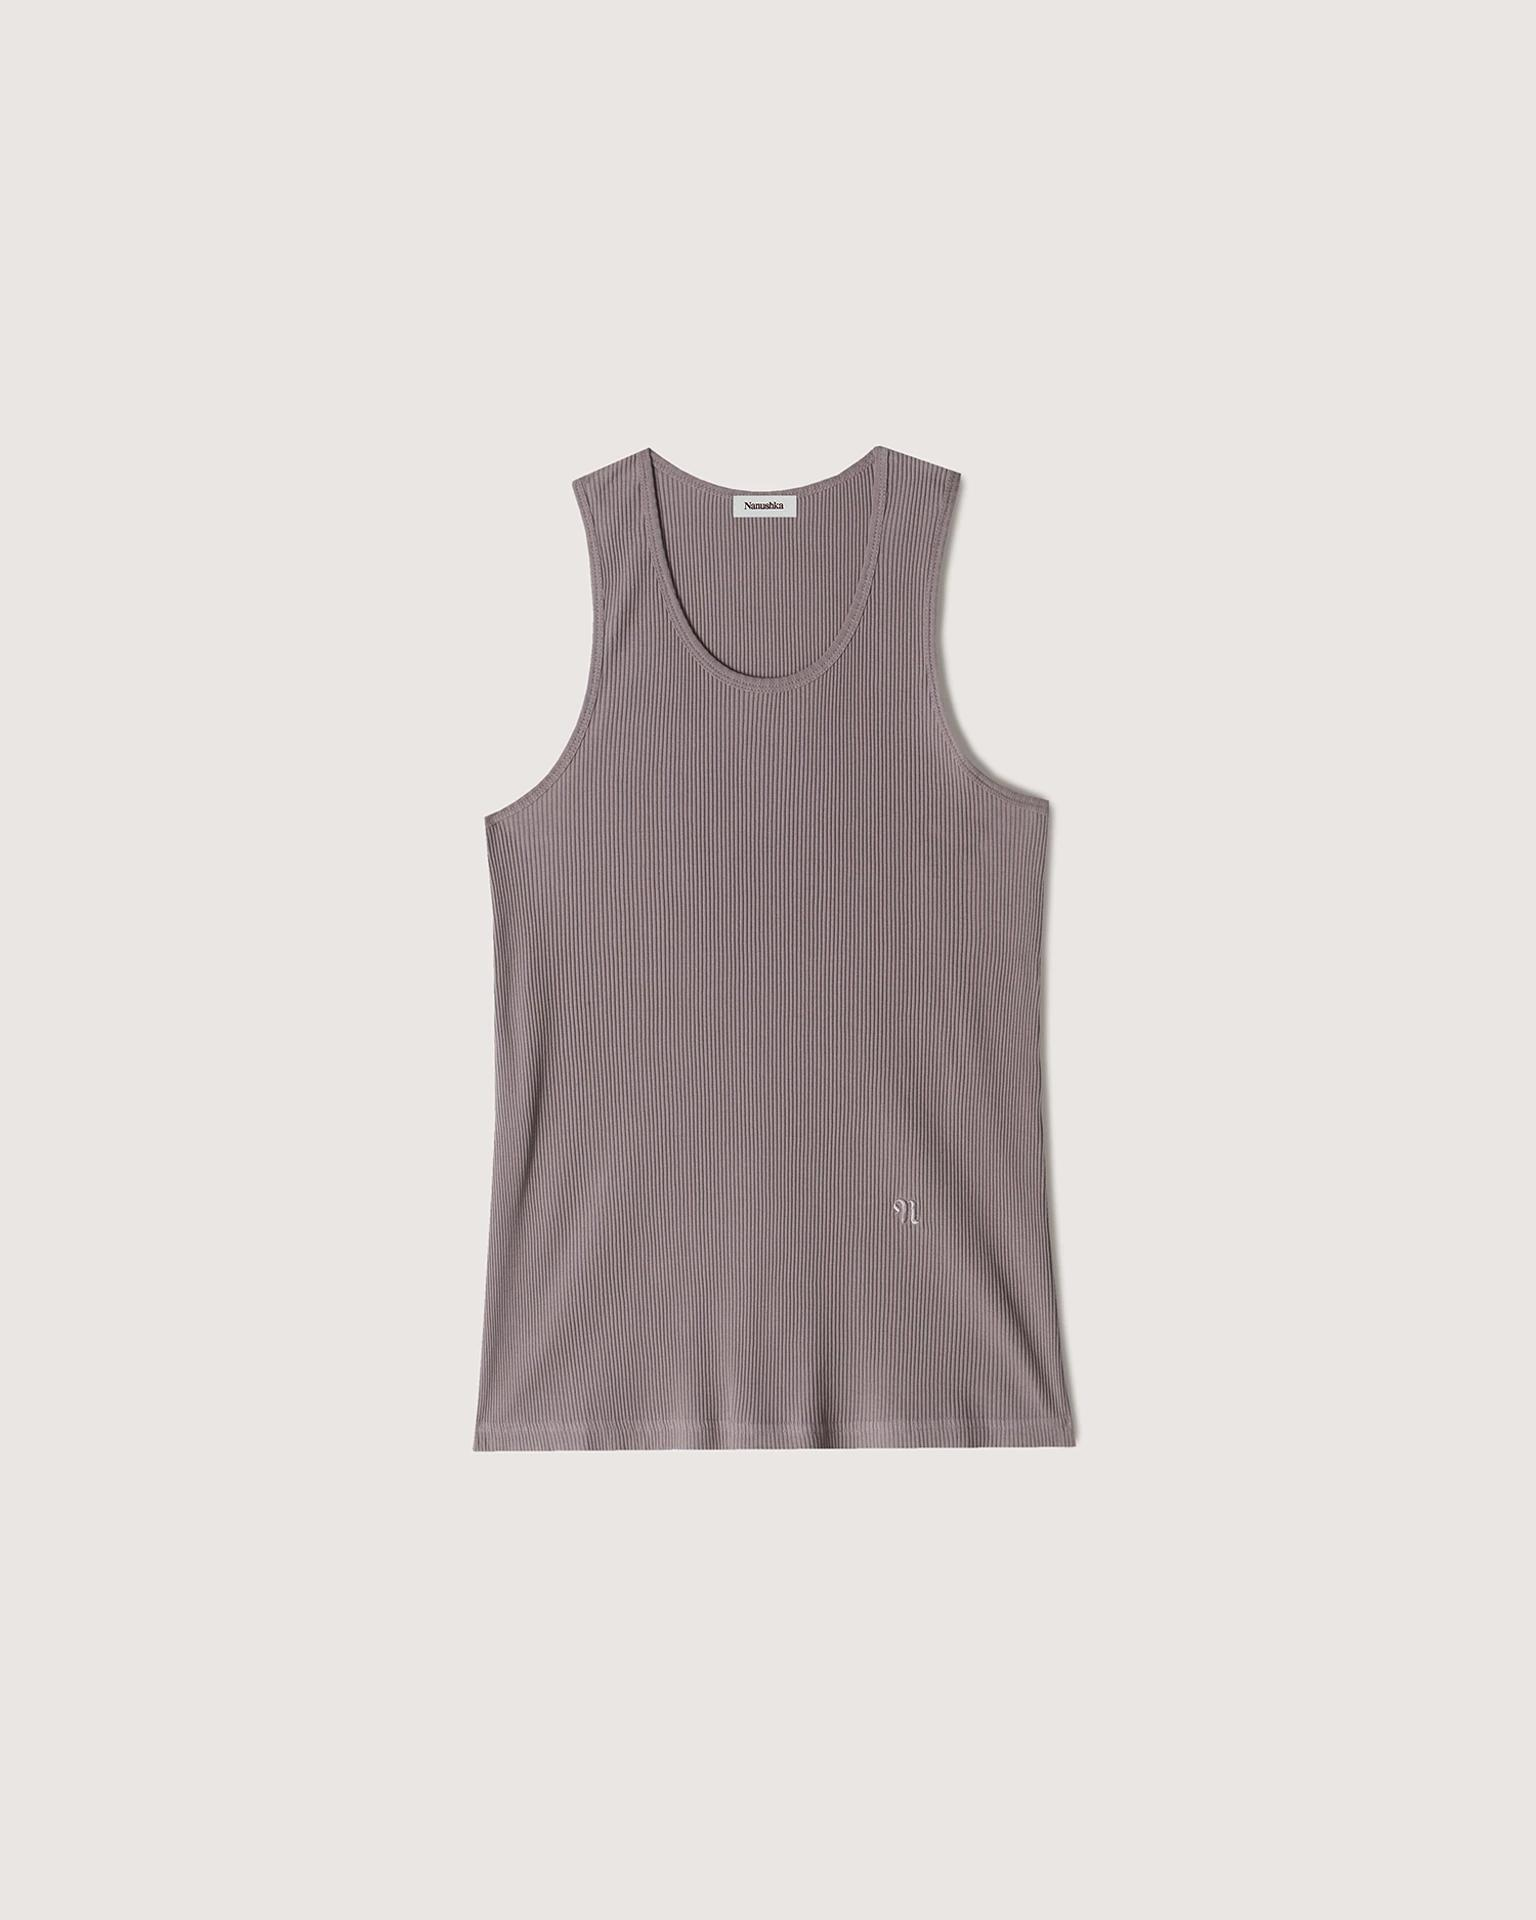 KORBEN - Ribbed-jersey top - Washed lilac